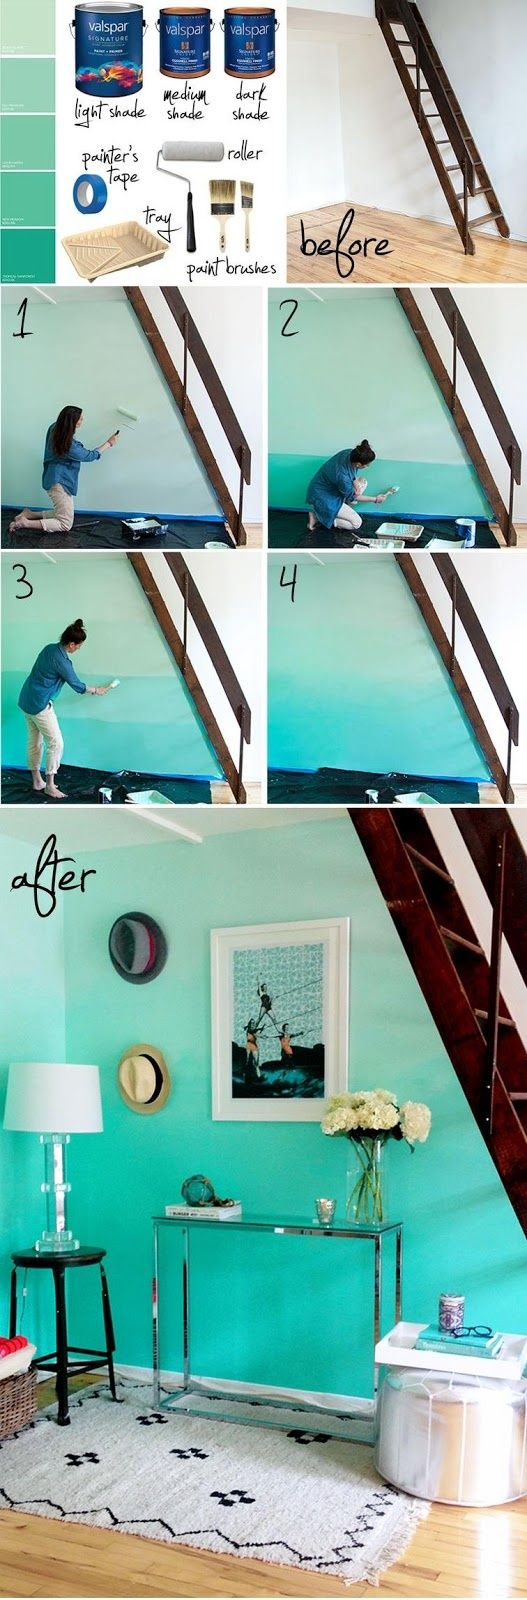 Top 10 Home decor DIY Ideas. Painting TipsCreative Wall ...